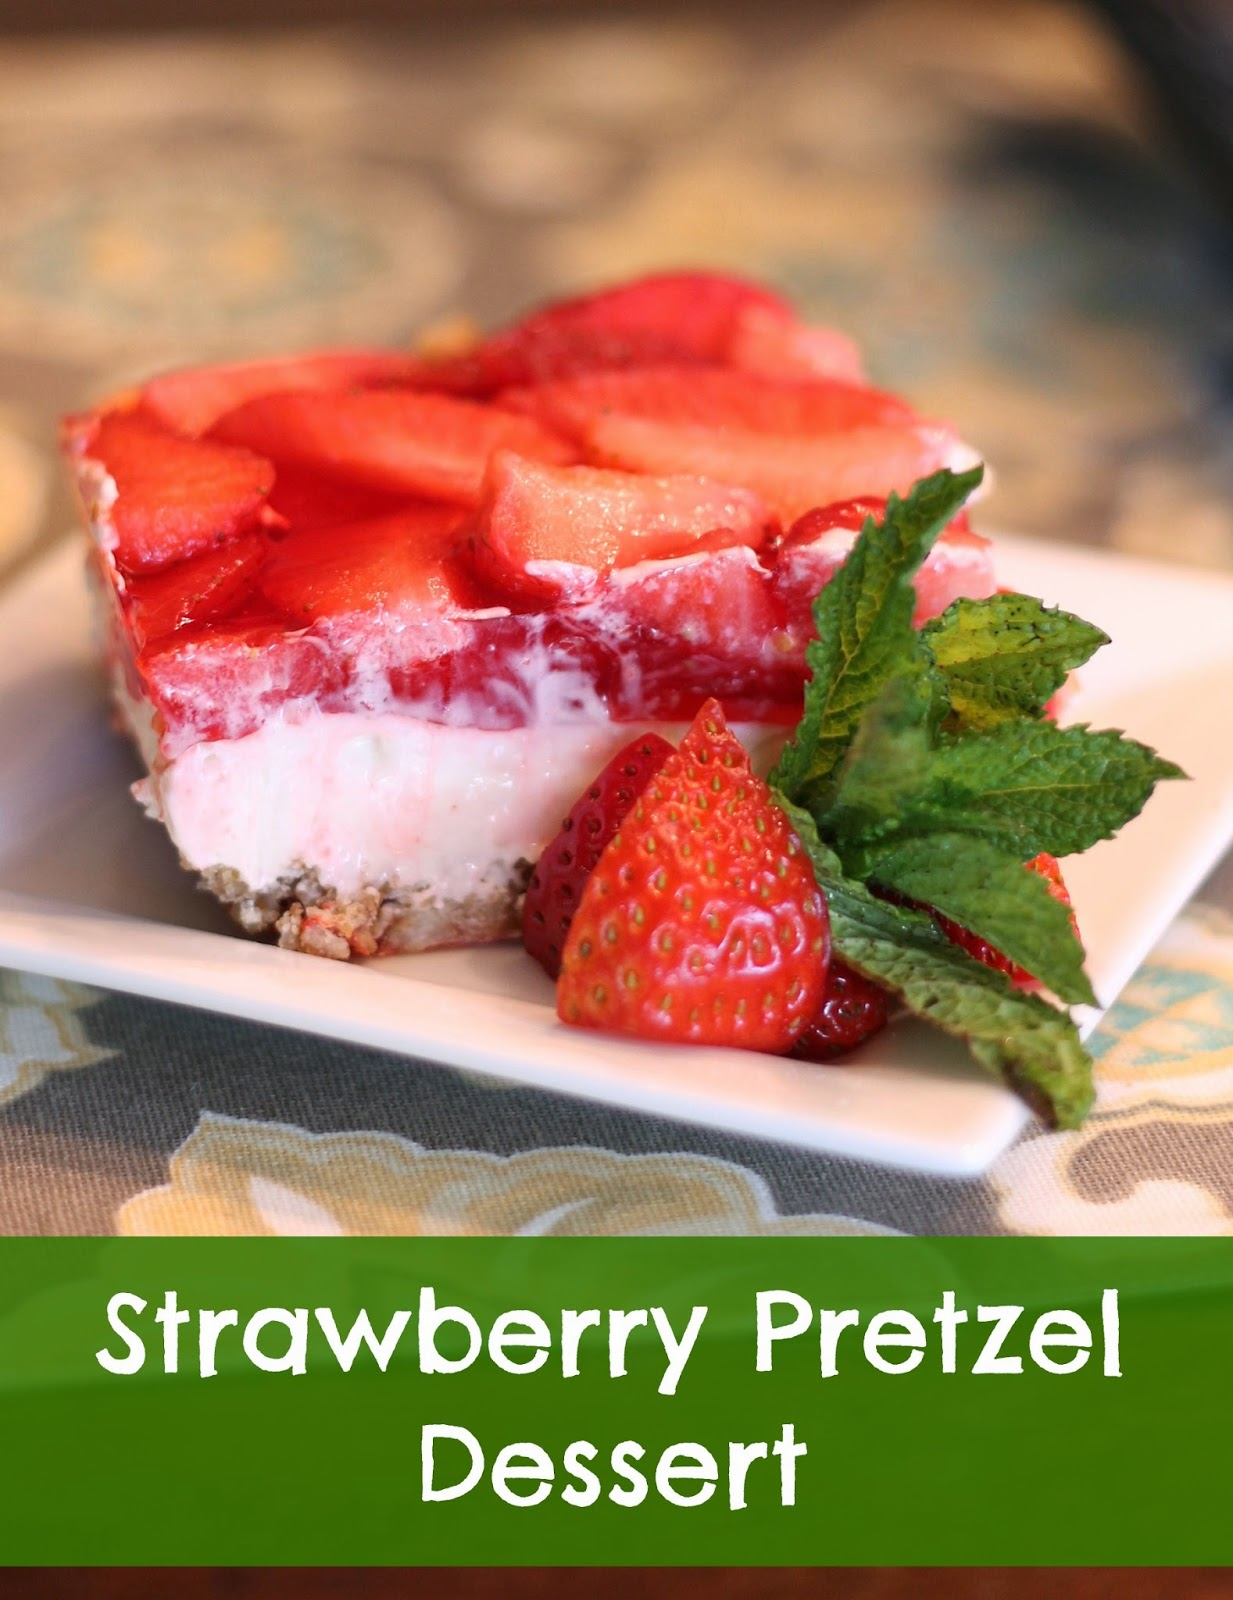 Strawberry Pretzel Salad is a delicious lower sugar, weight watchers friendly dessert.